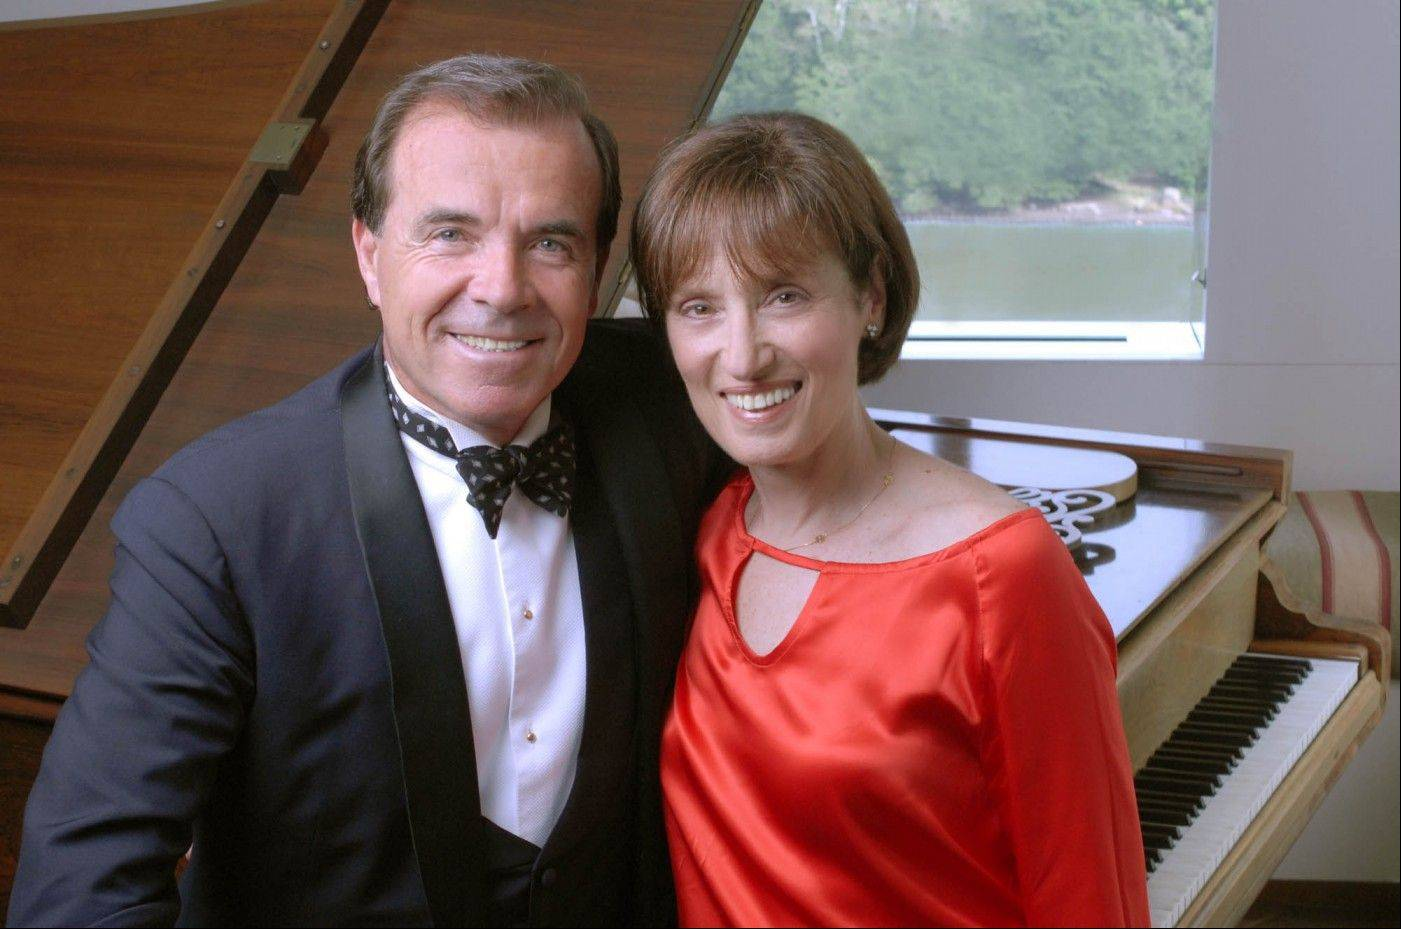 Husband-and-wife pianists Misha and Cipa Dichter perform Sunday in the Martin Theatre at Ravinia Festival in Highland Park.